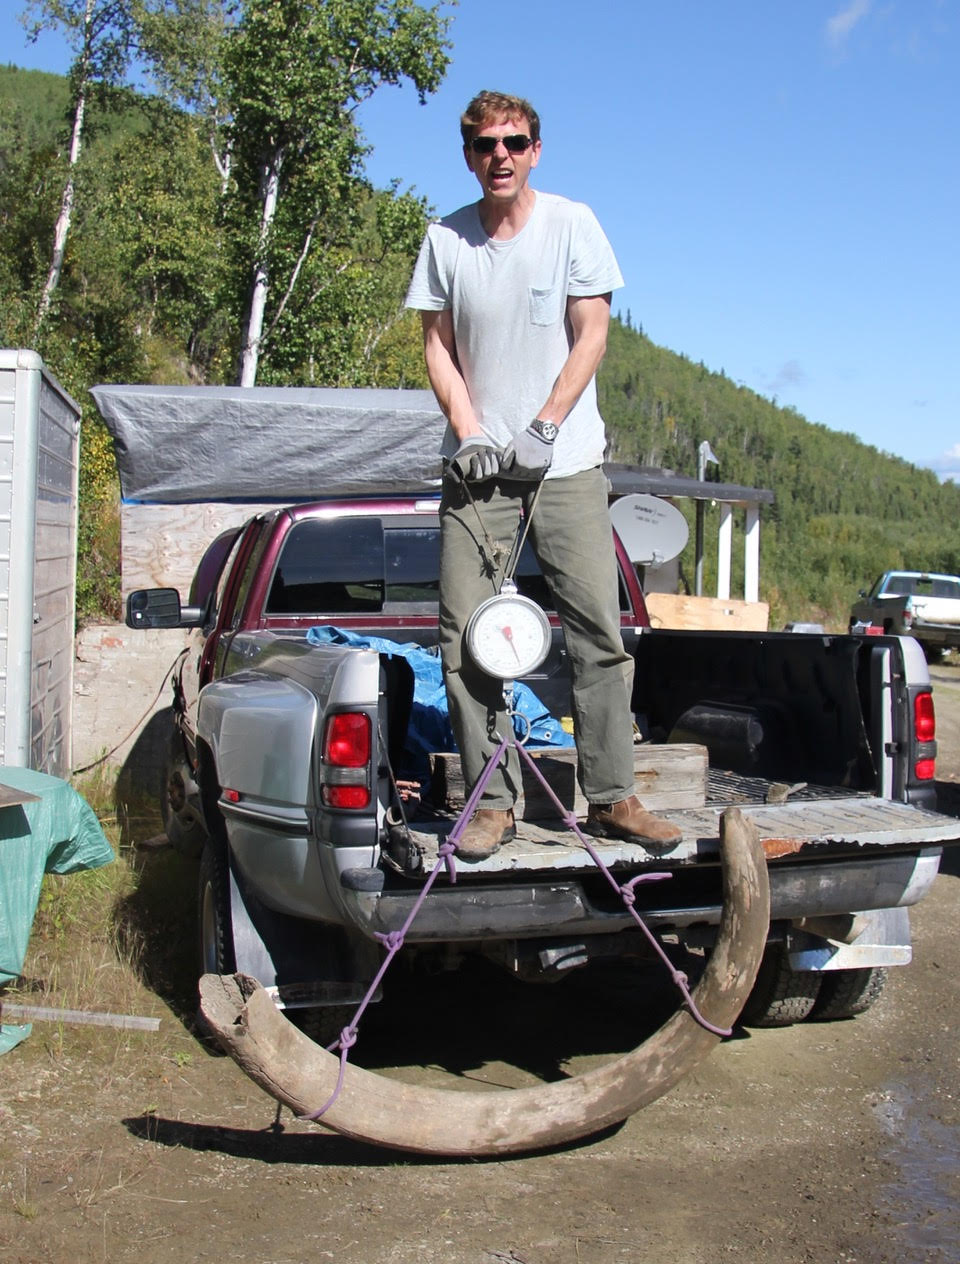 Bruce Schindler weighing a mammoth tusk he excavated in the Yukon